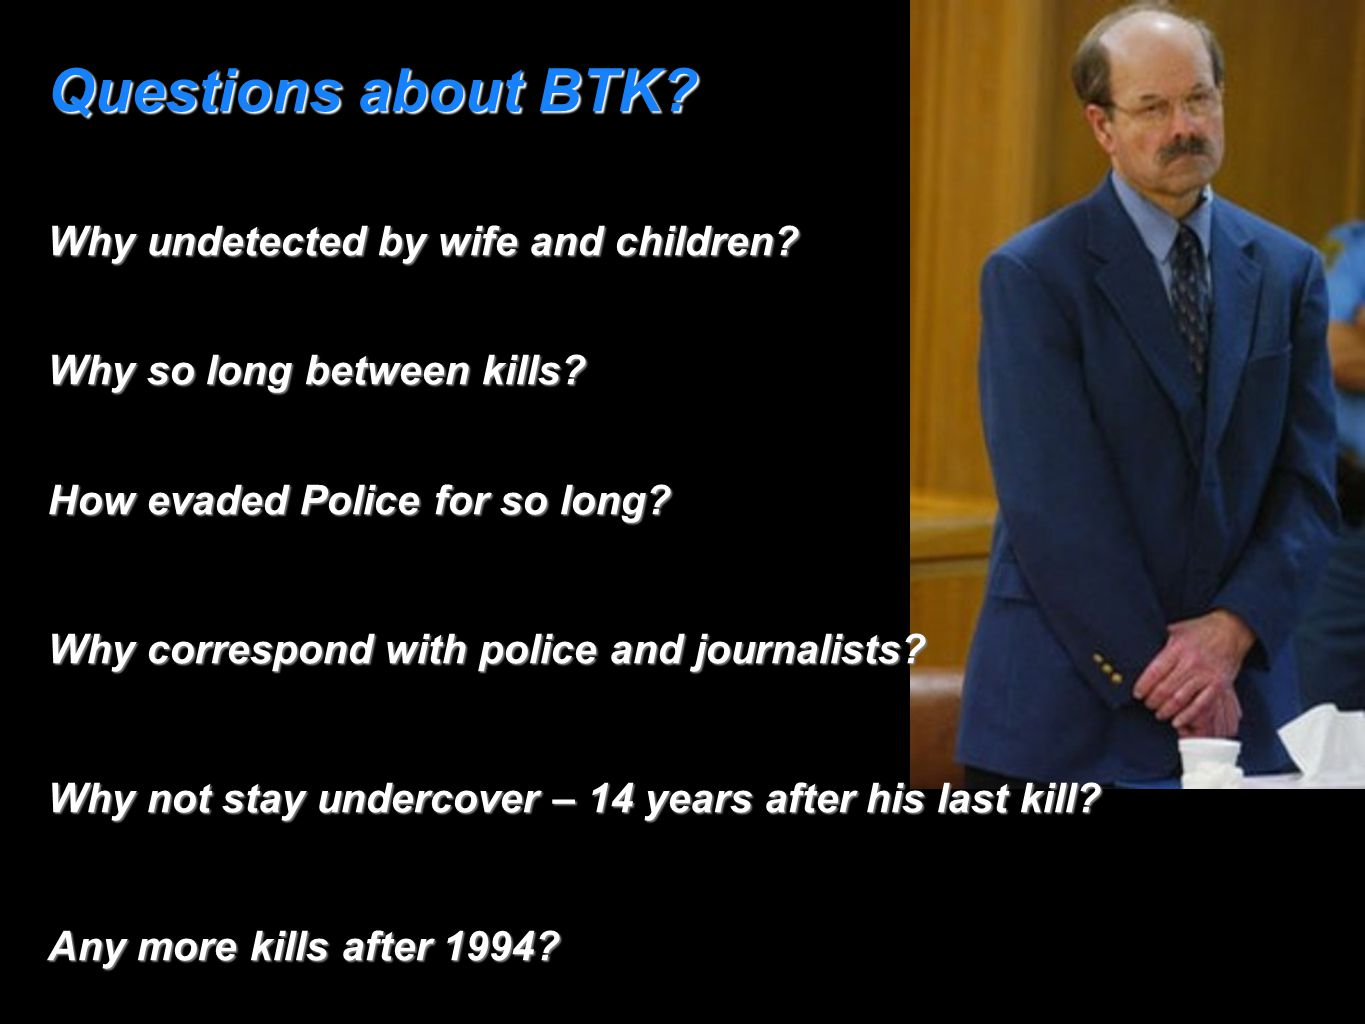 Questions about BTK. Why undetected by wife and children.